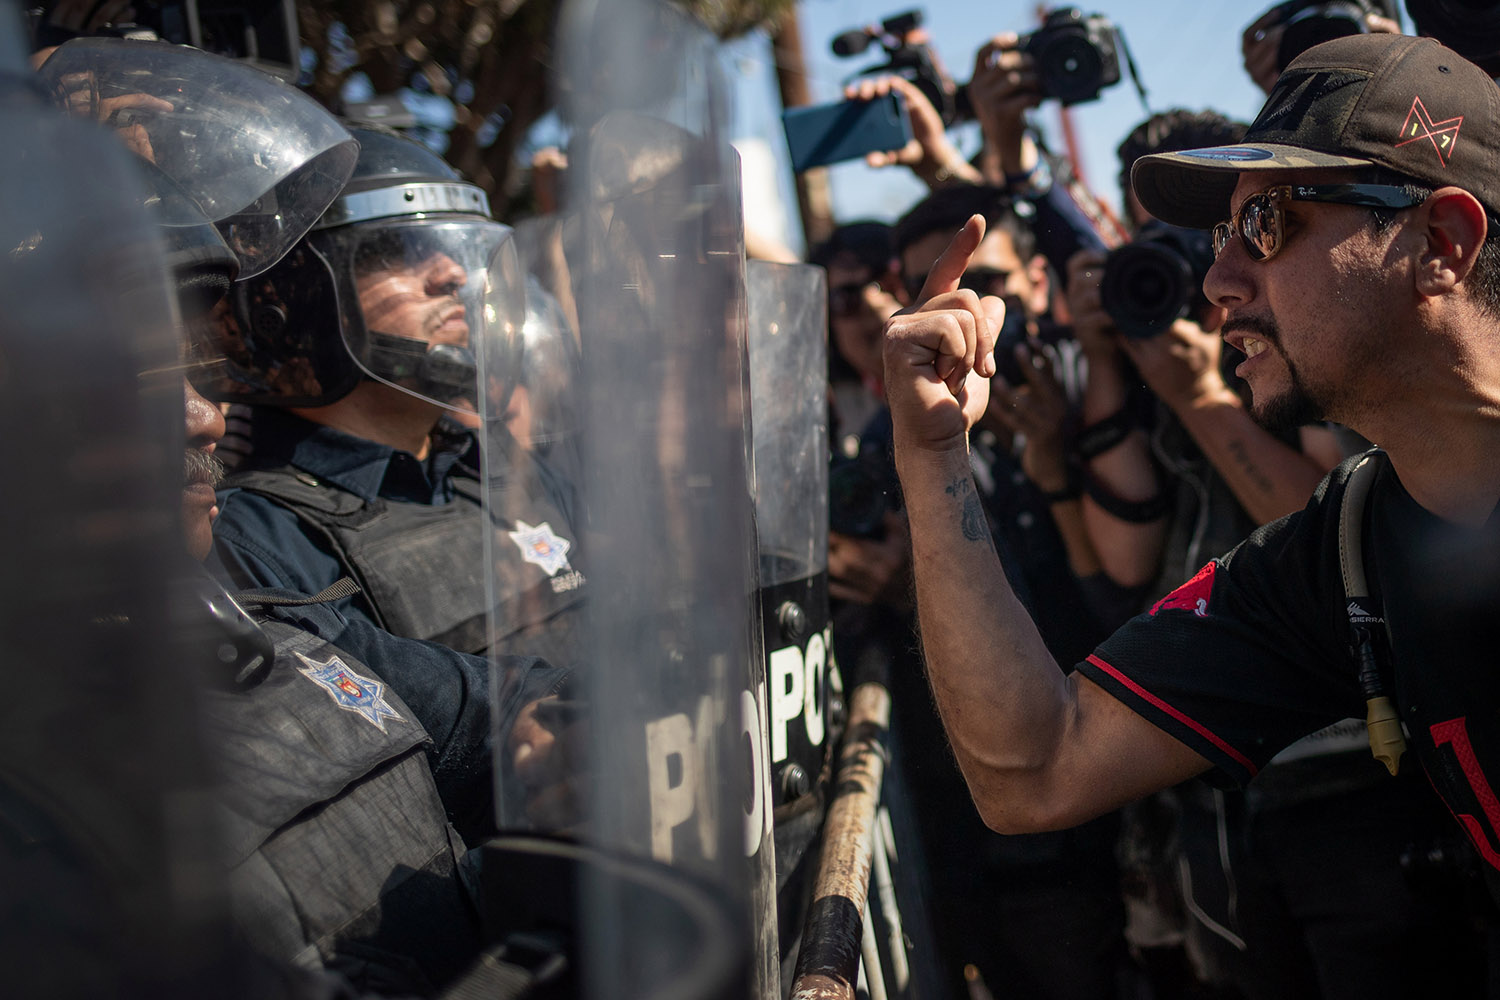 A demonstrator, part of a protest march against migrants, shouts towards a line of police in riot gear who were standing guard over a temporary shelter housing a caravan from Central America trying to reach the U.S., in Tijuana, Mexico November 18, 2018. REUTERS/Adrees Latif